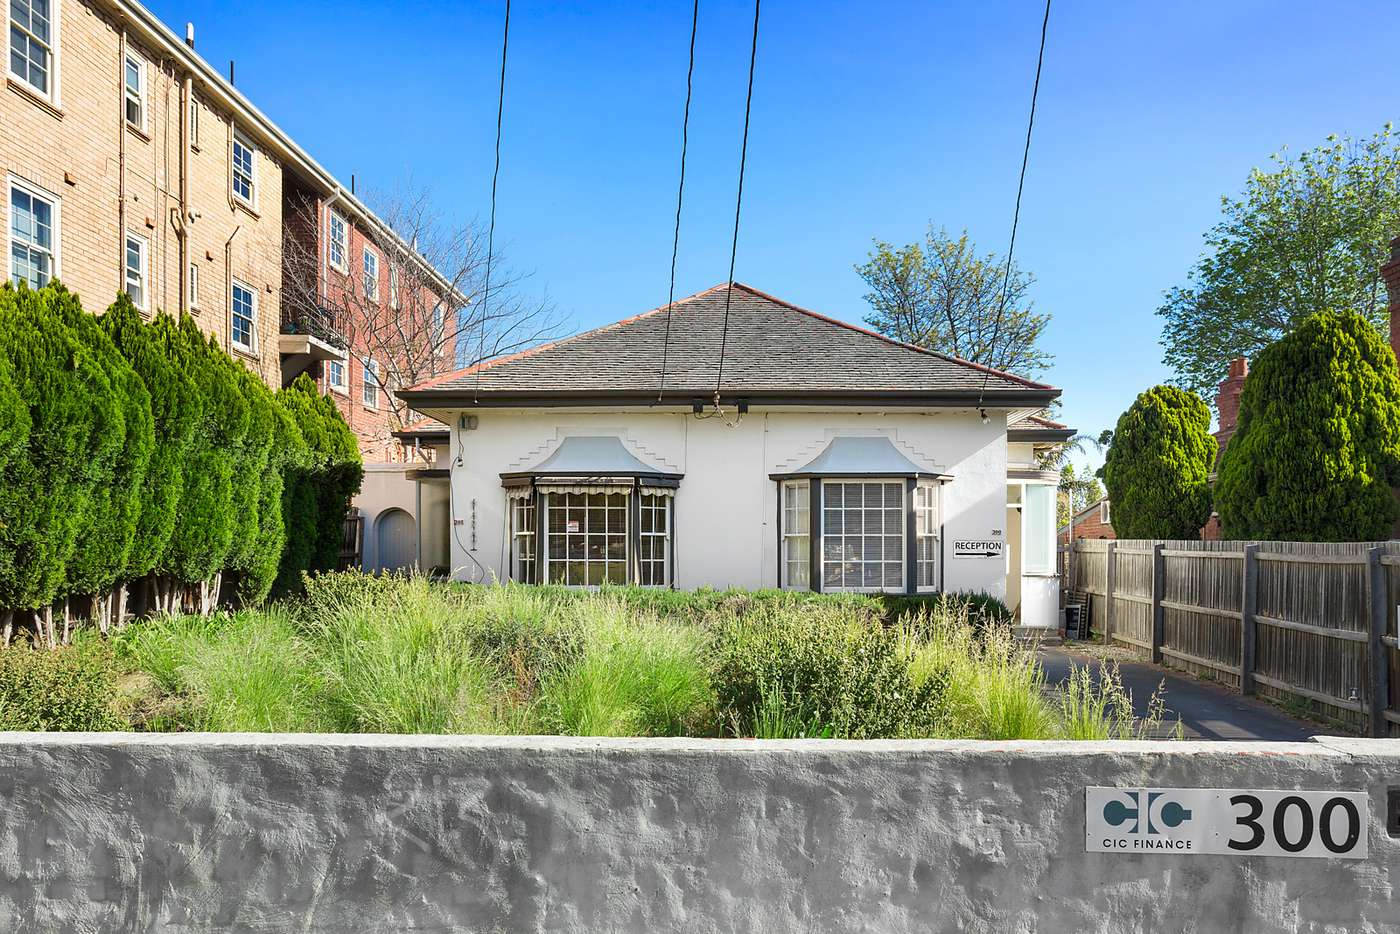 Main view of Homely house listing, 302 Dandenong Road, St Kilda East, VIC 3183